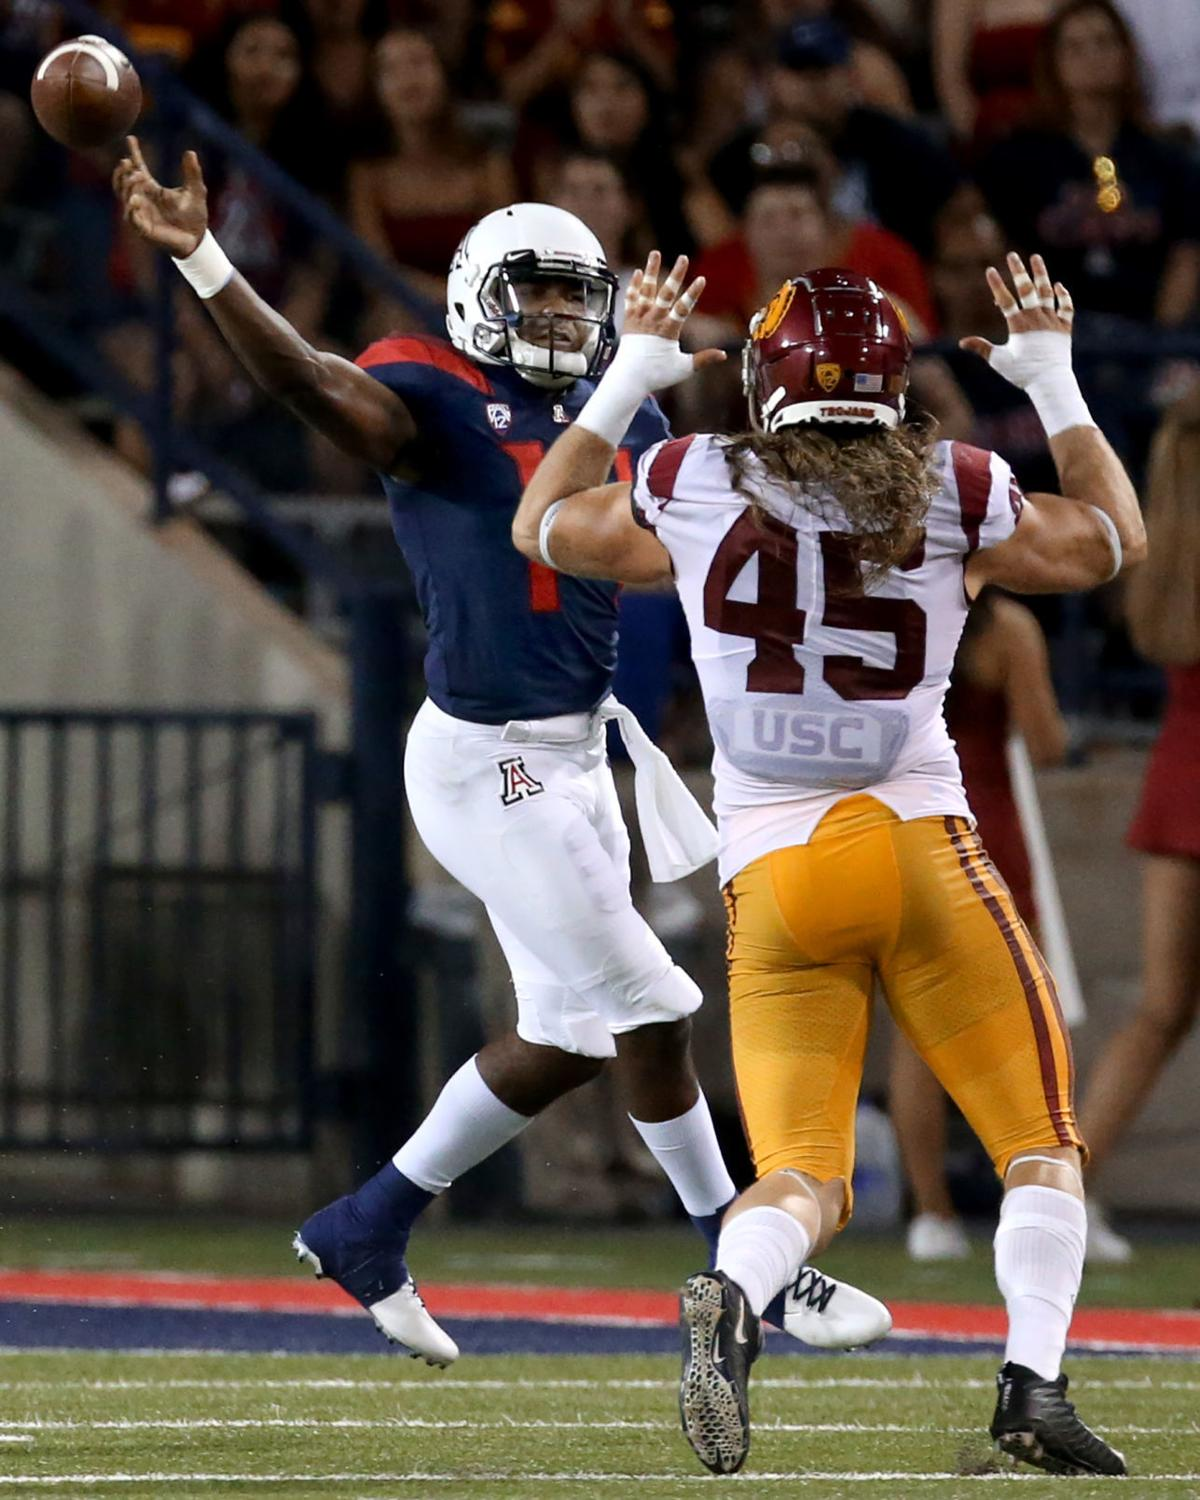 University of Arizona vs USC